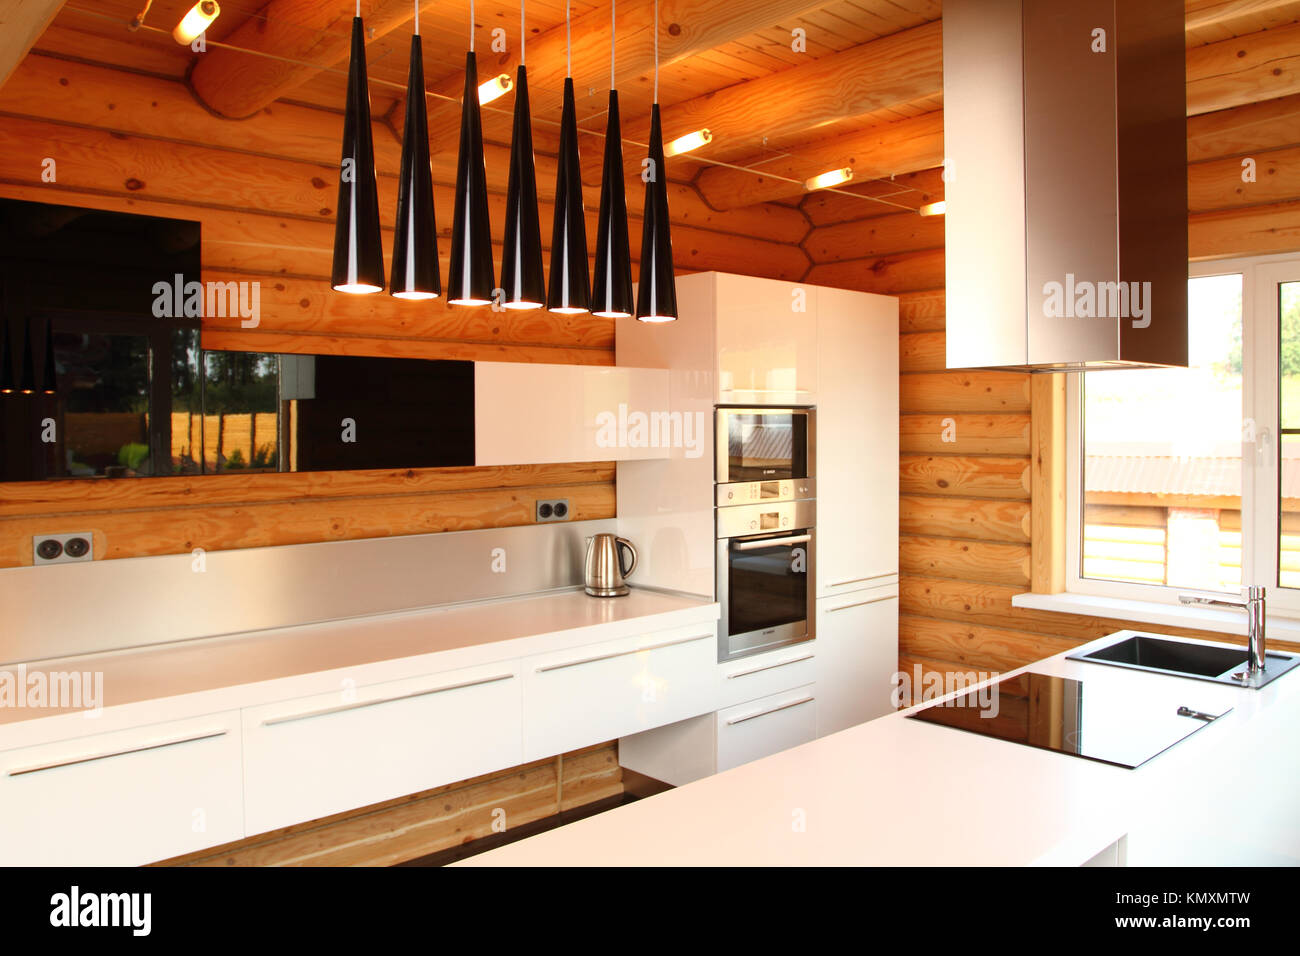 Wide Kitchen In The Wooden House Executed In Style Hight Tech Stock